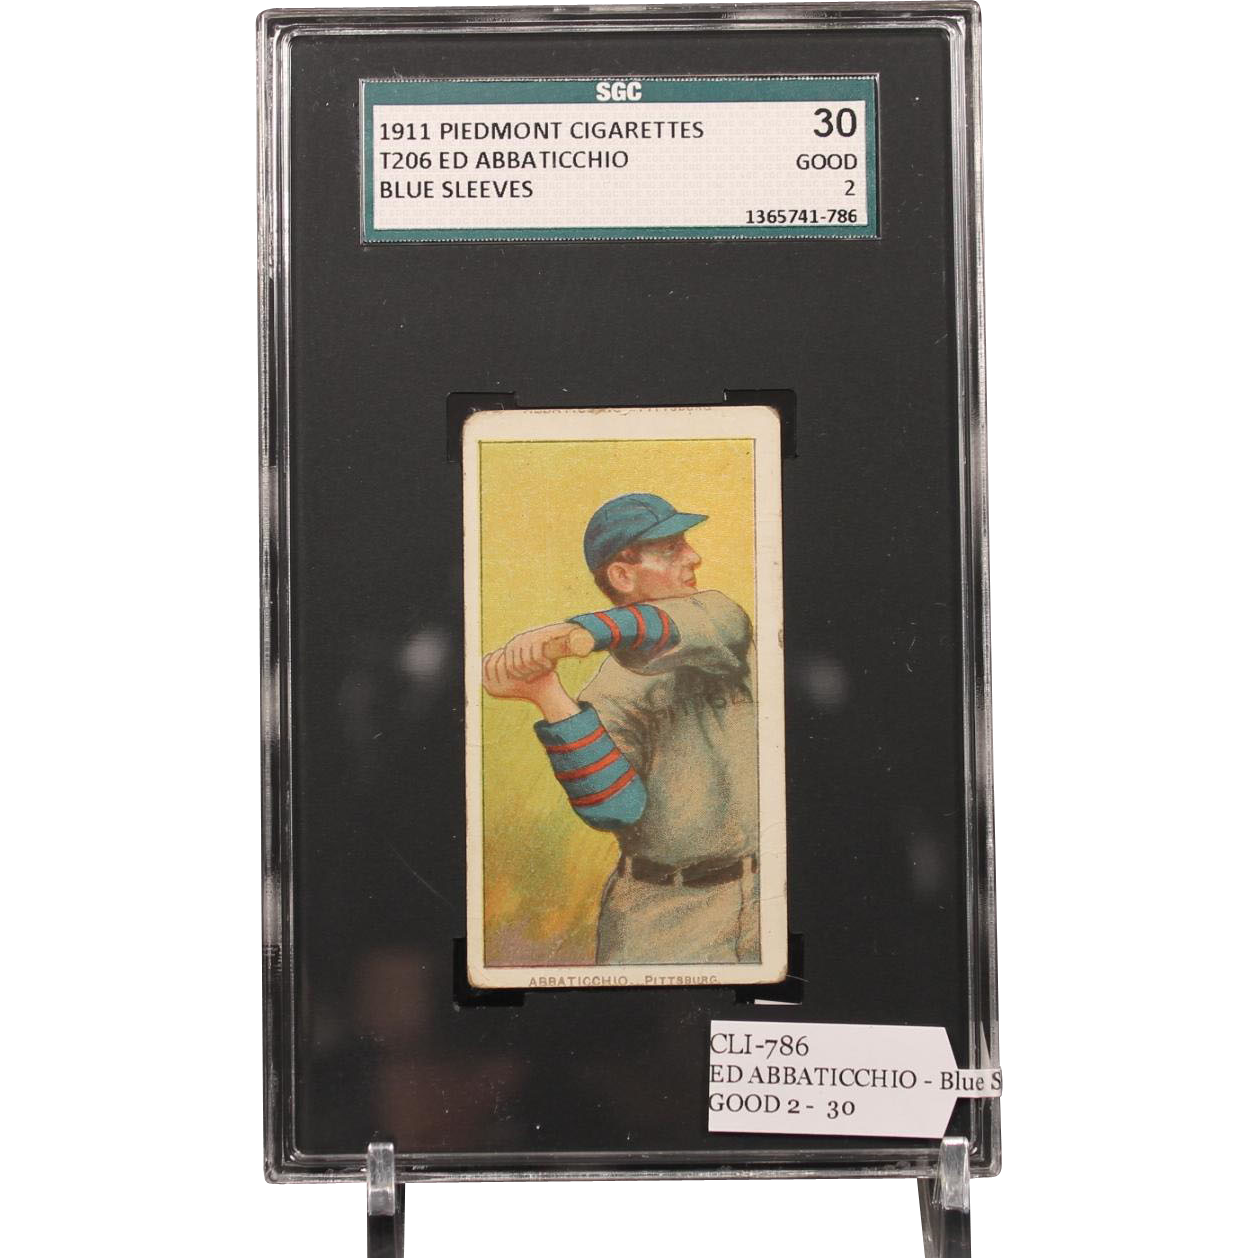 T206 ED ABBATICCHIO - Blue Sleeves SGC grade 30 GOOD 2